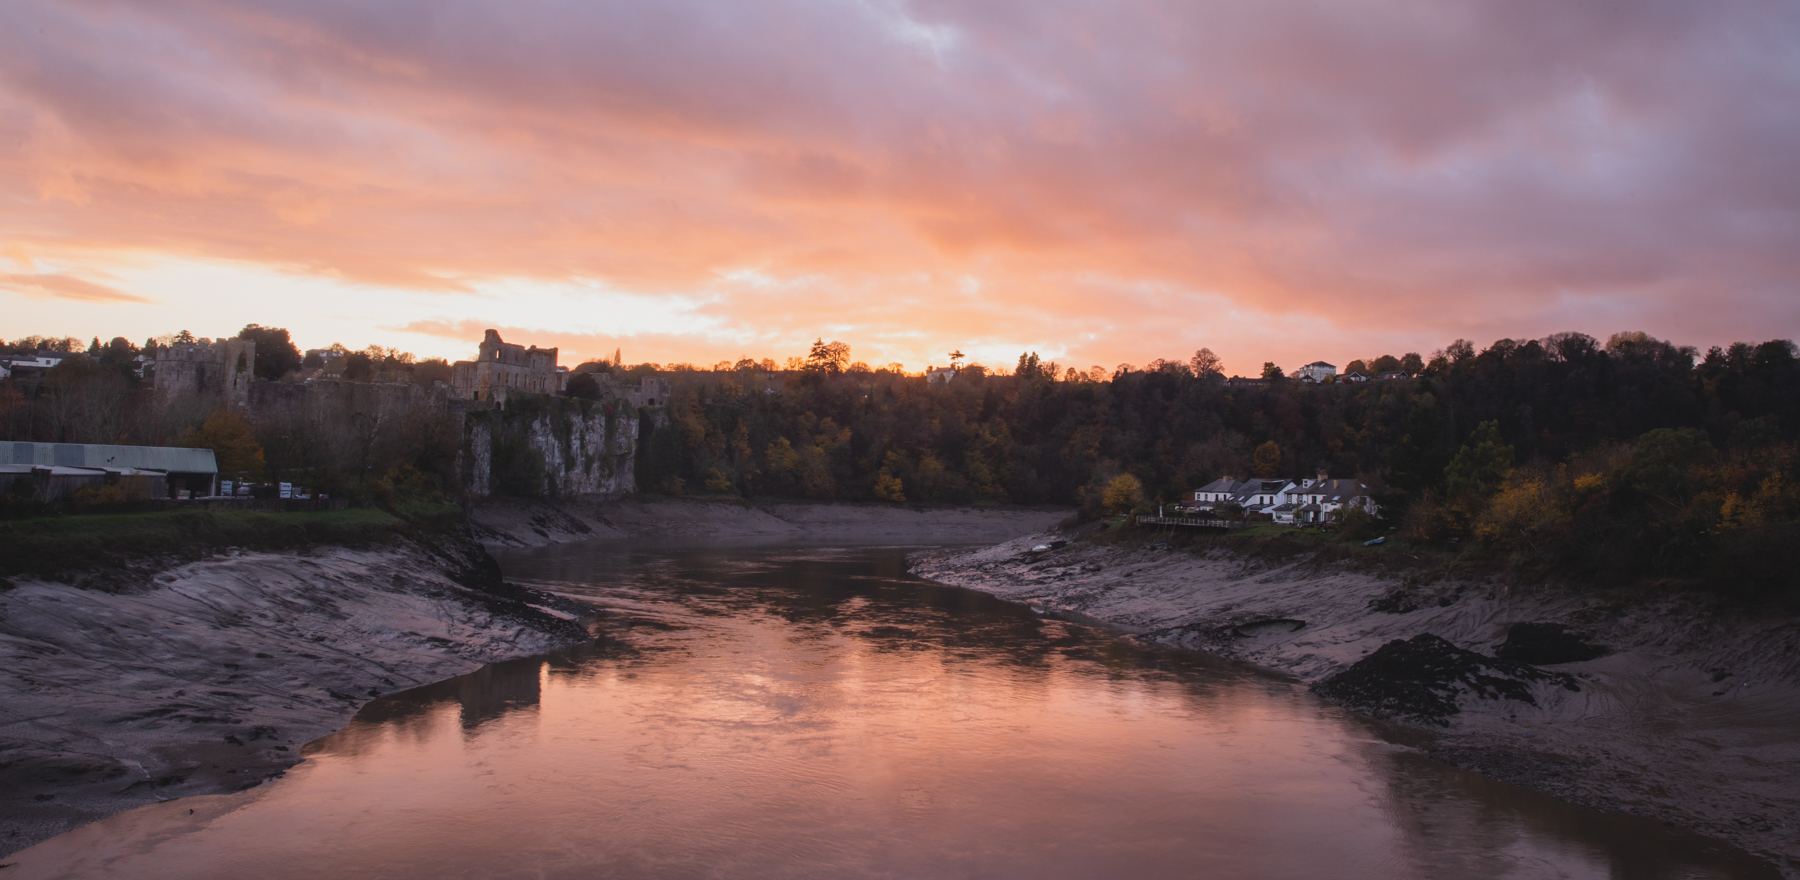 landscape-environment-photography-chepstow-south-wales-england-natalia-smith-photography-0007.jpg